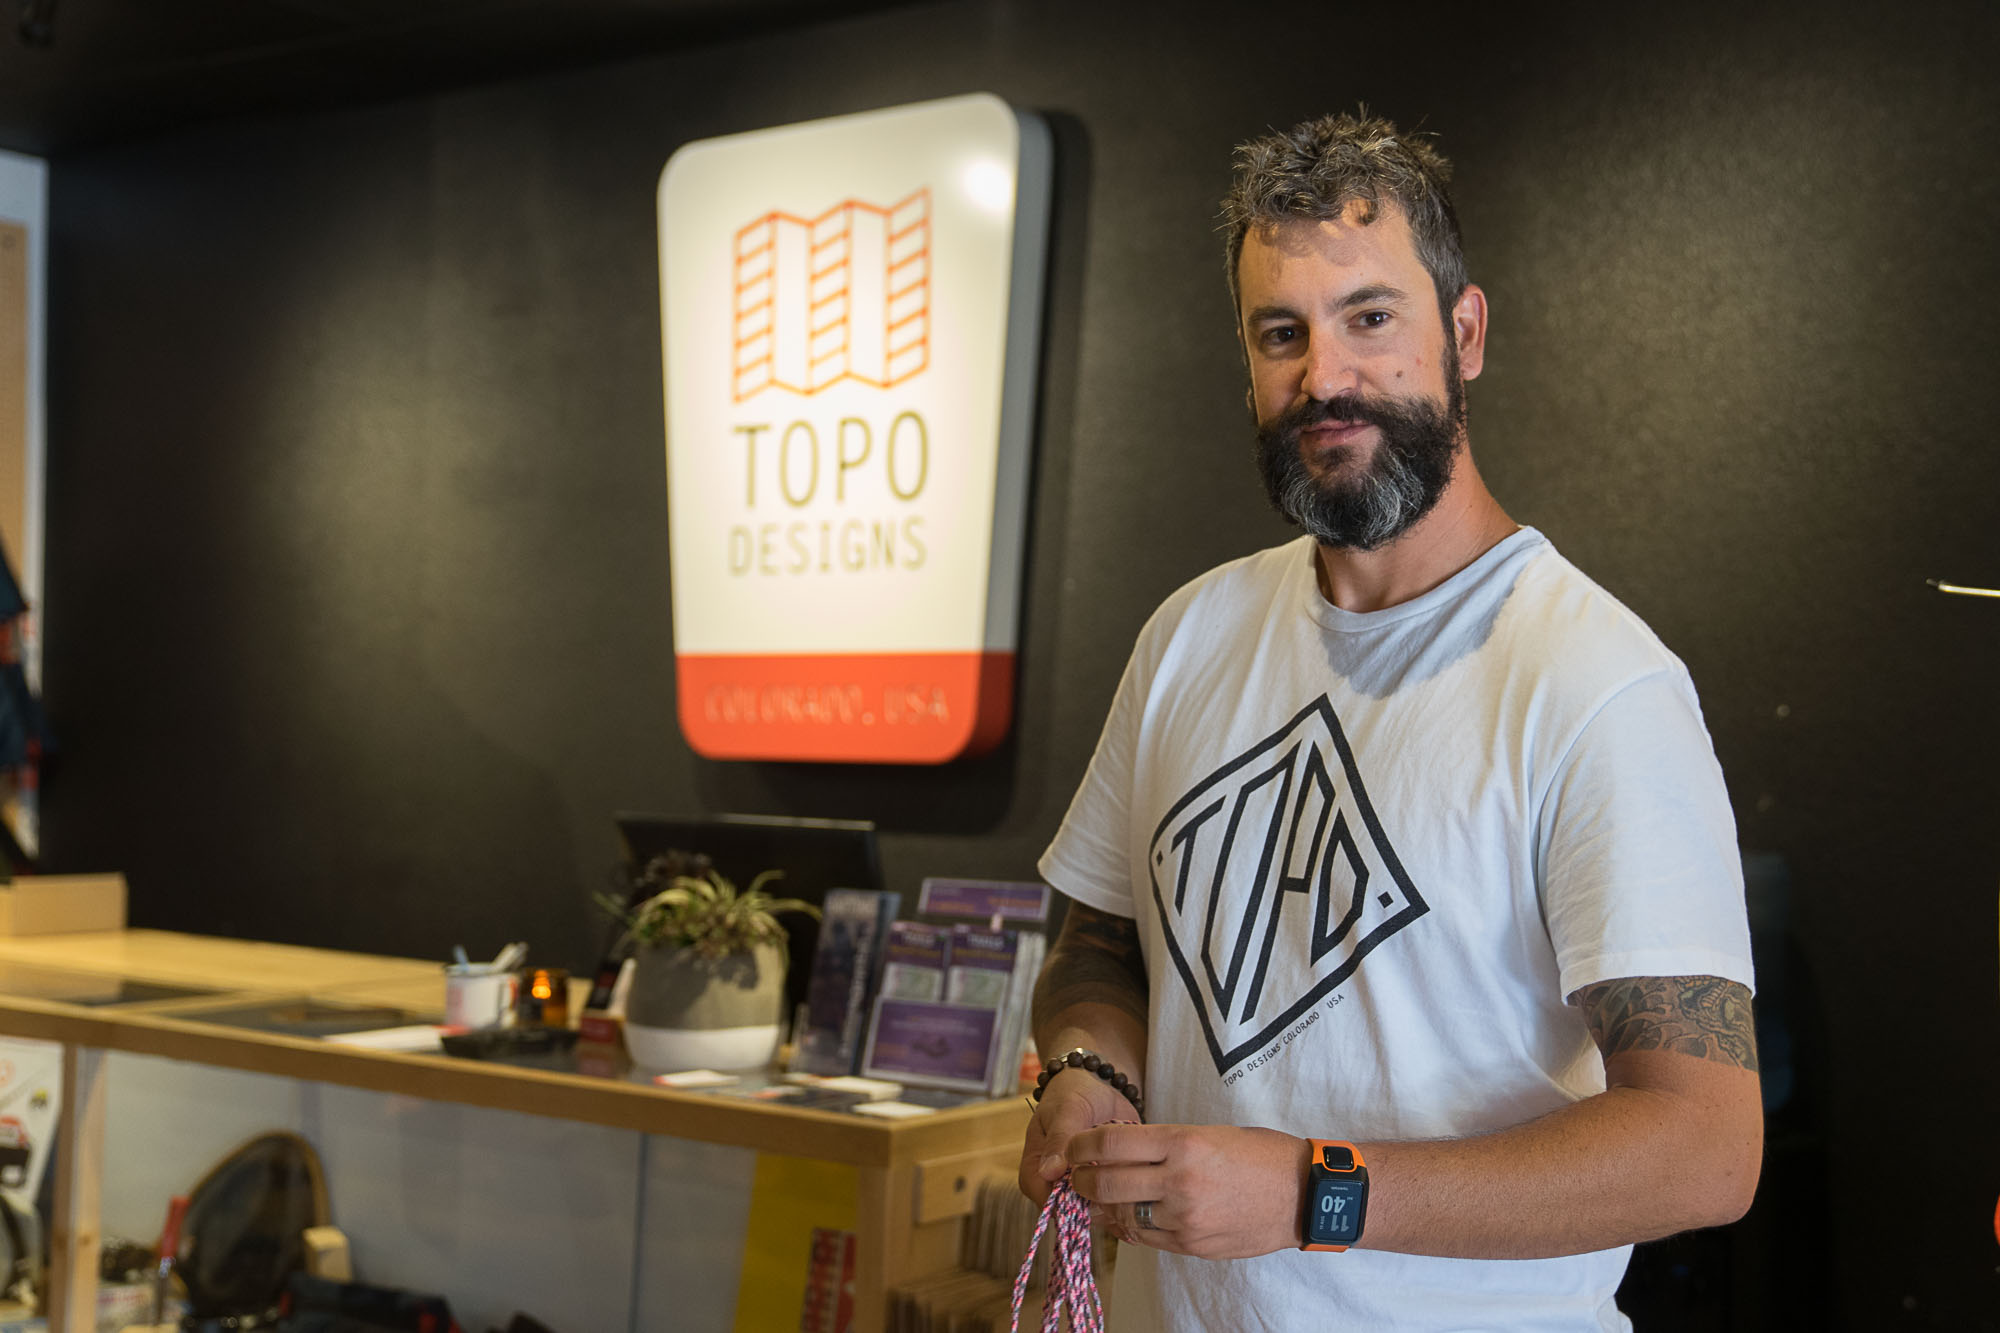 The inside of Topo Designs, an outdoor apparel manufacturer based in Denver, Colorado.